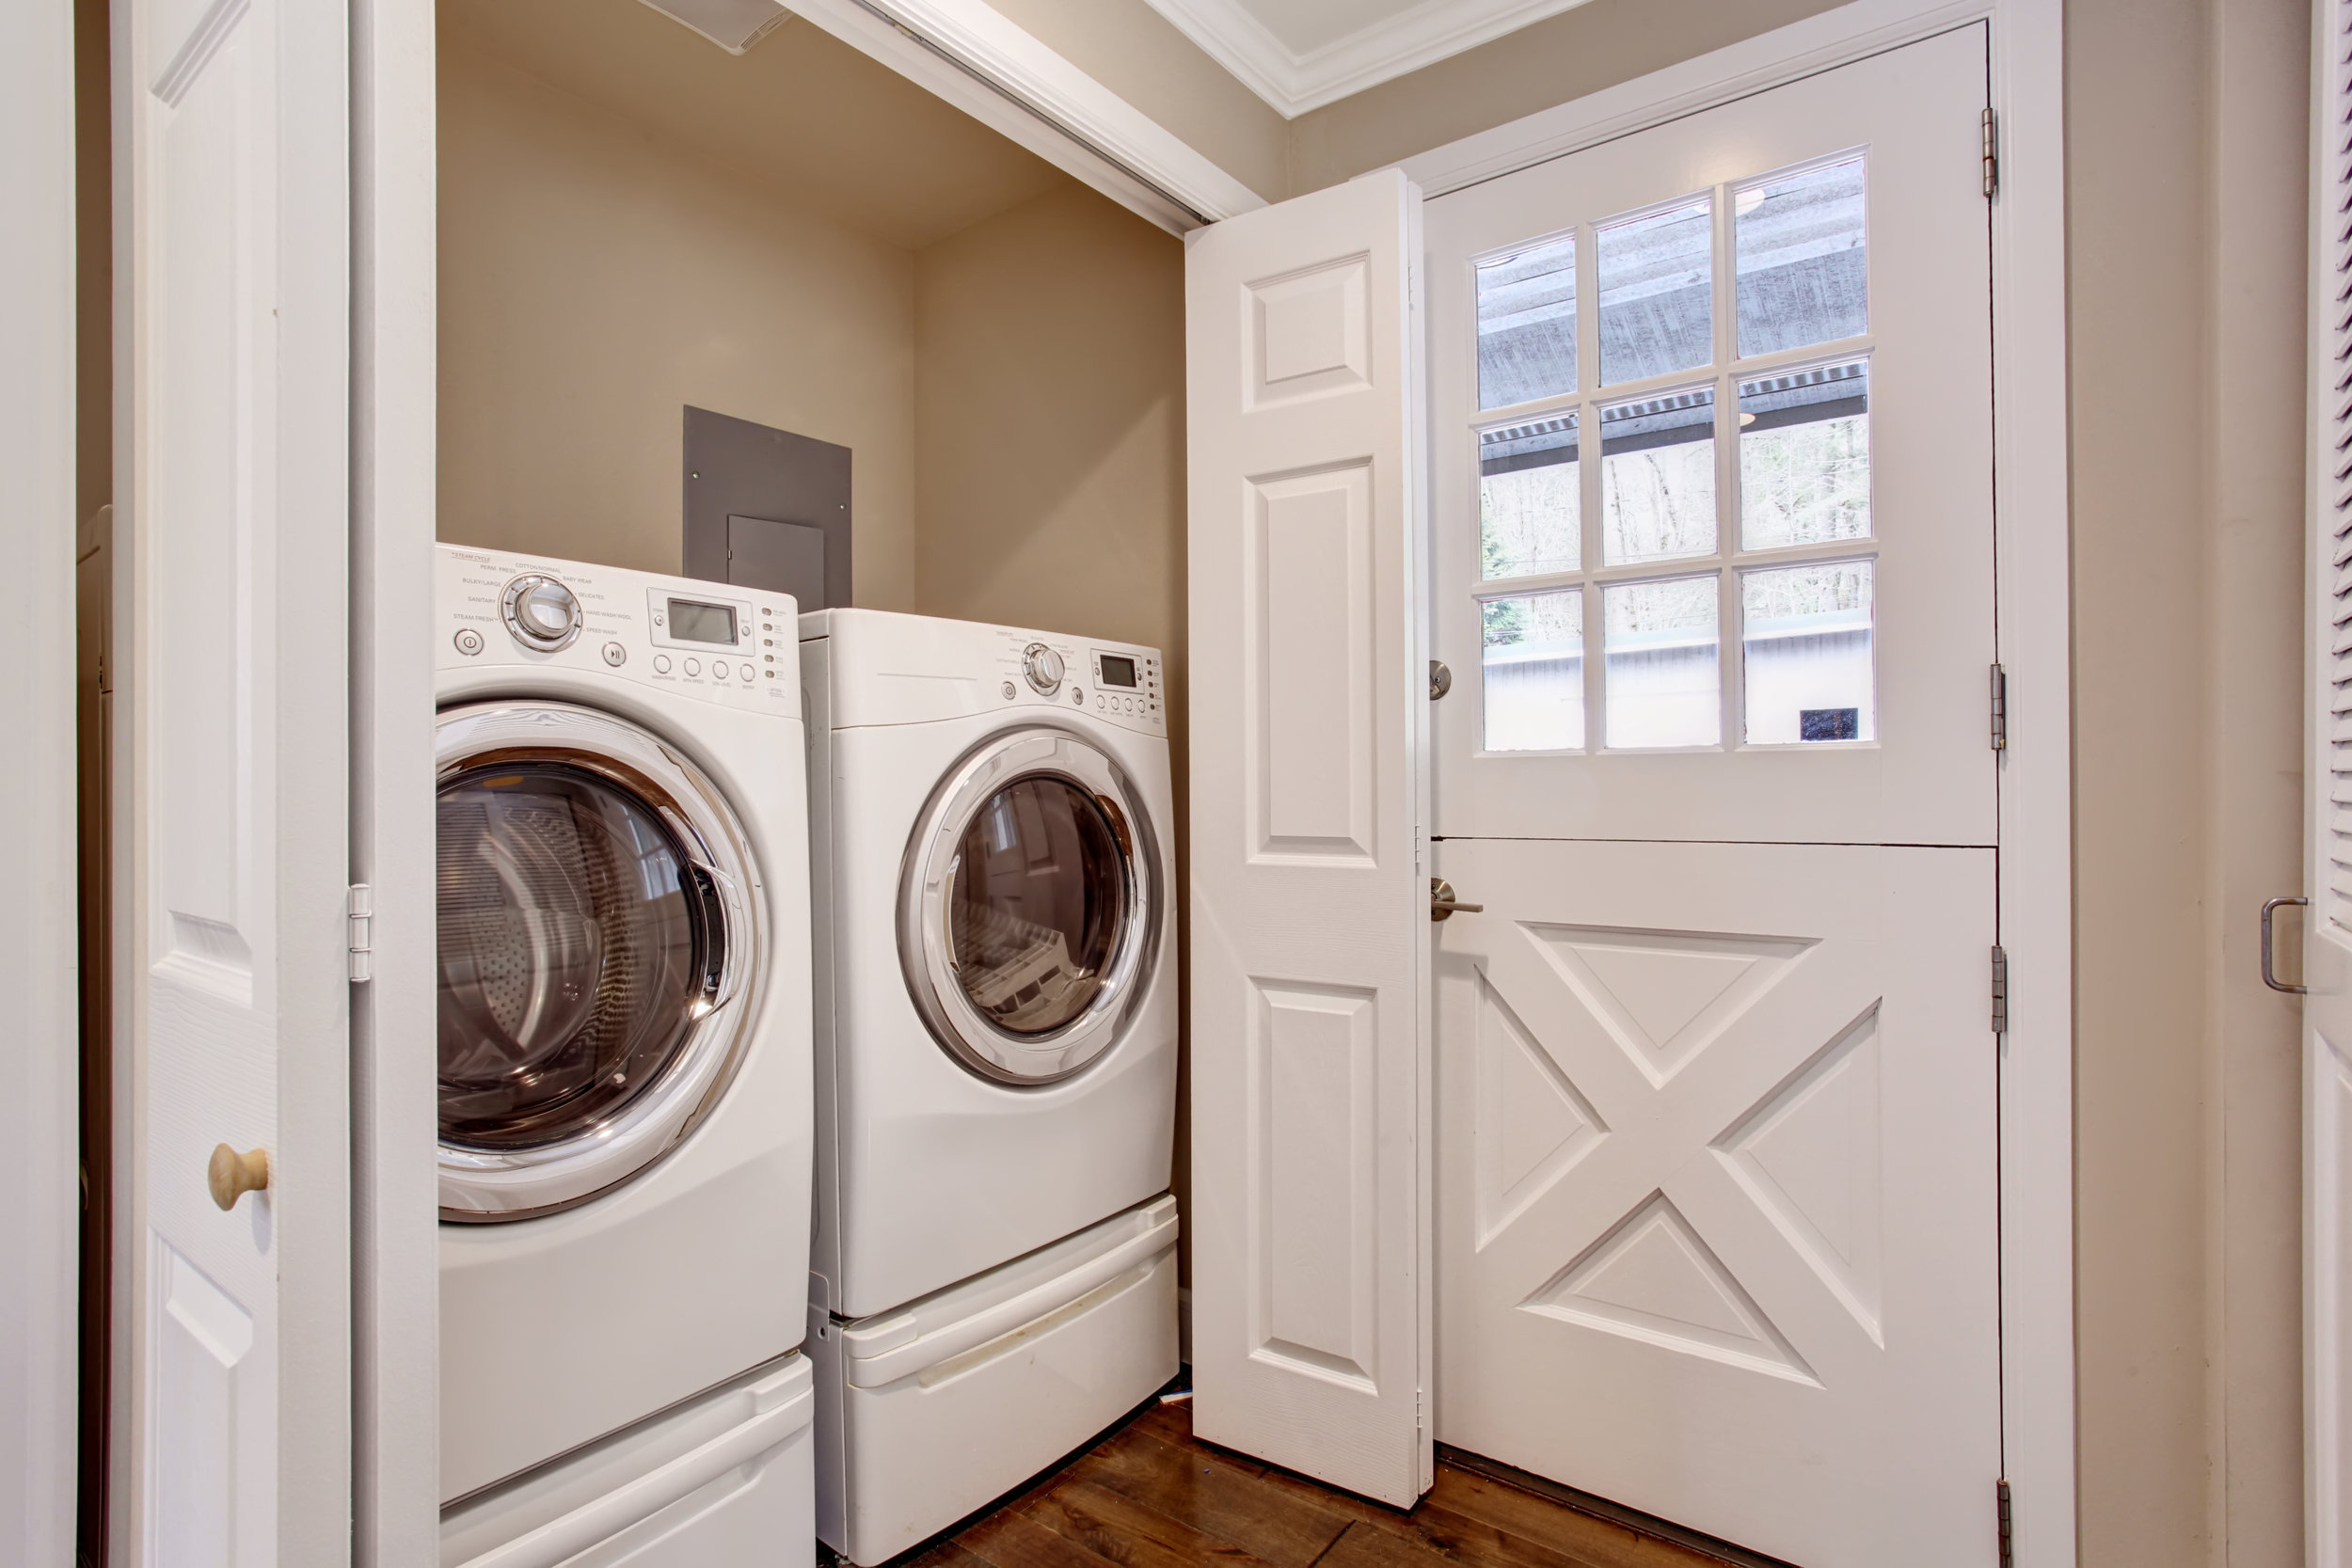 Laundry & Utility Room installation & upgrade -